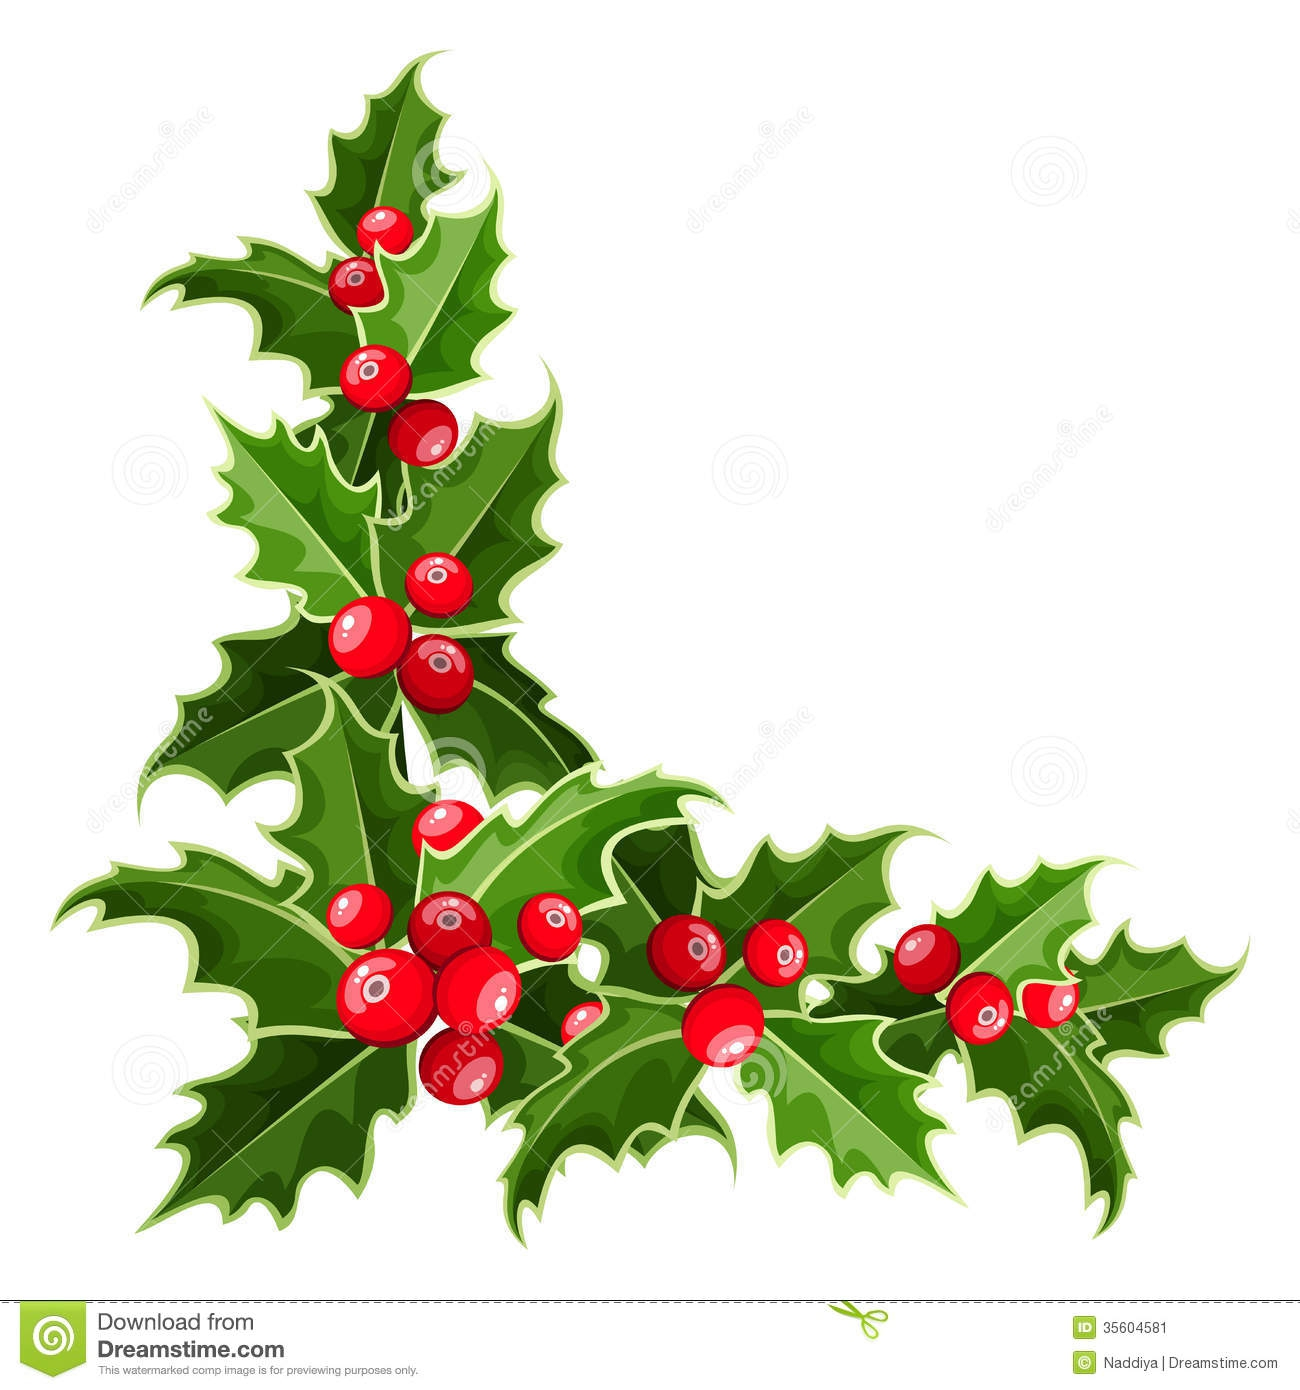 christmas border corner clipart - Clipground